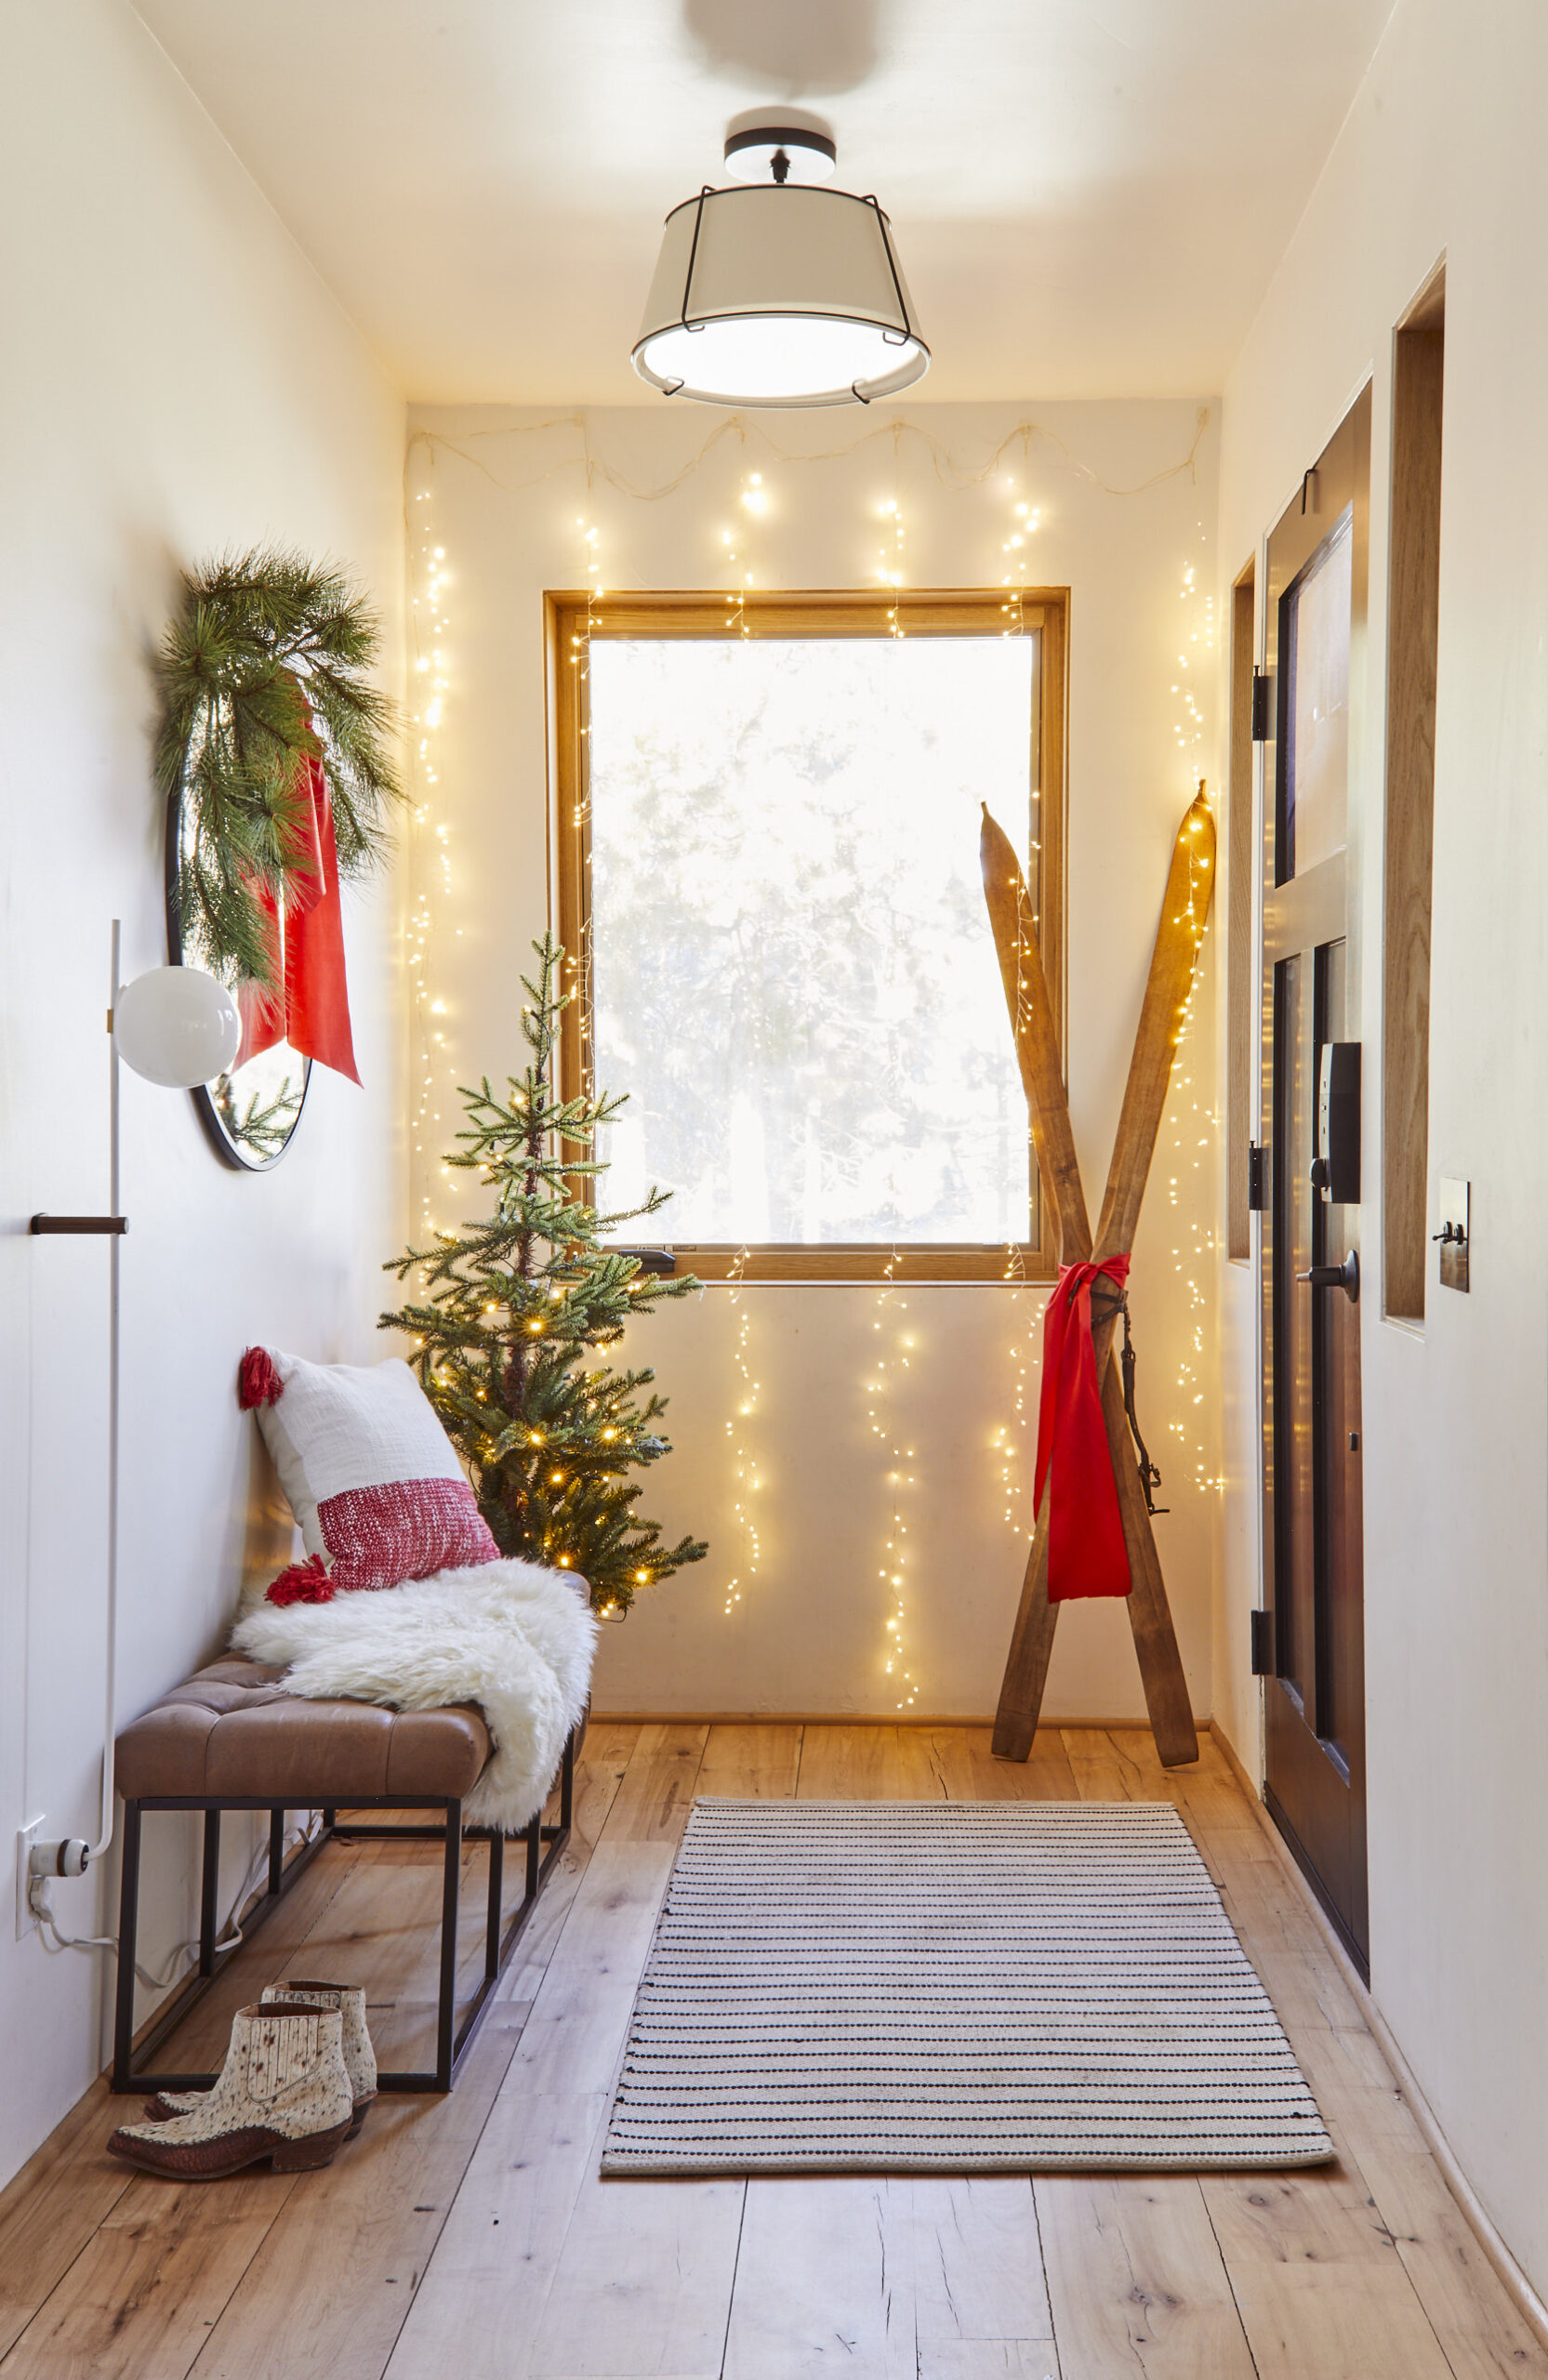 """5 Easy Ways To Create A Holiday """"Mood"""" If You Are Tired And Struggling To Get Into The Spirit This Year Best Children's Lighting & Home Decor Online Store"""